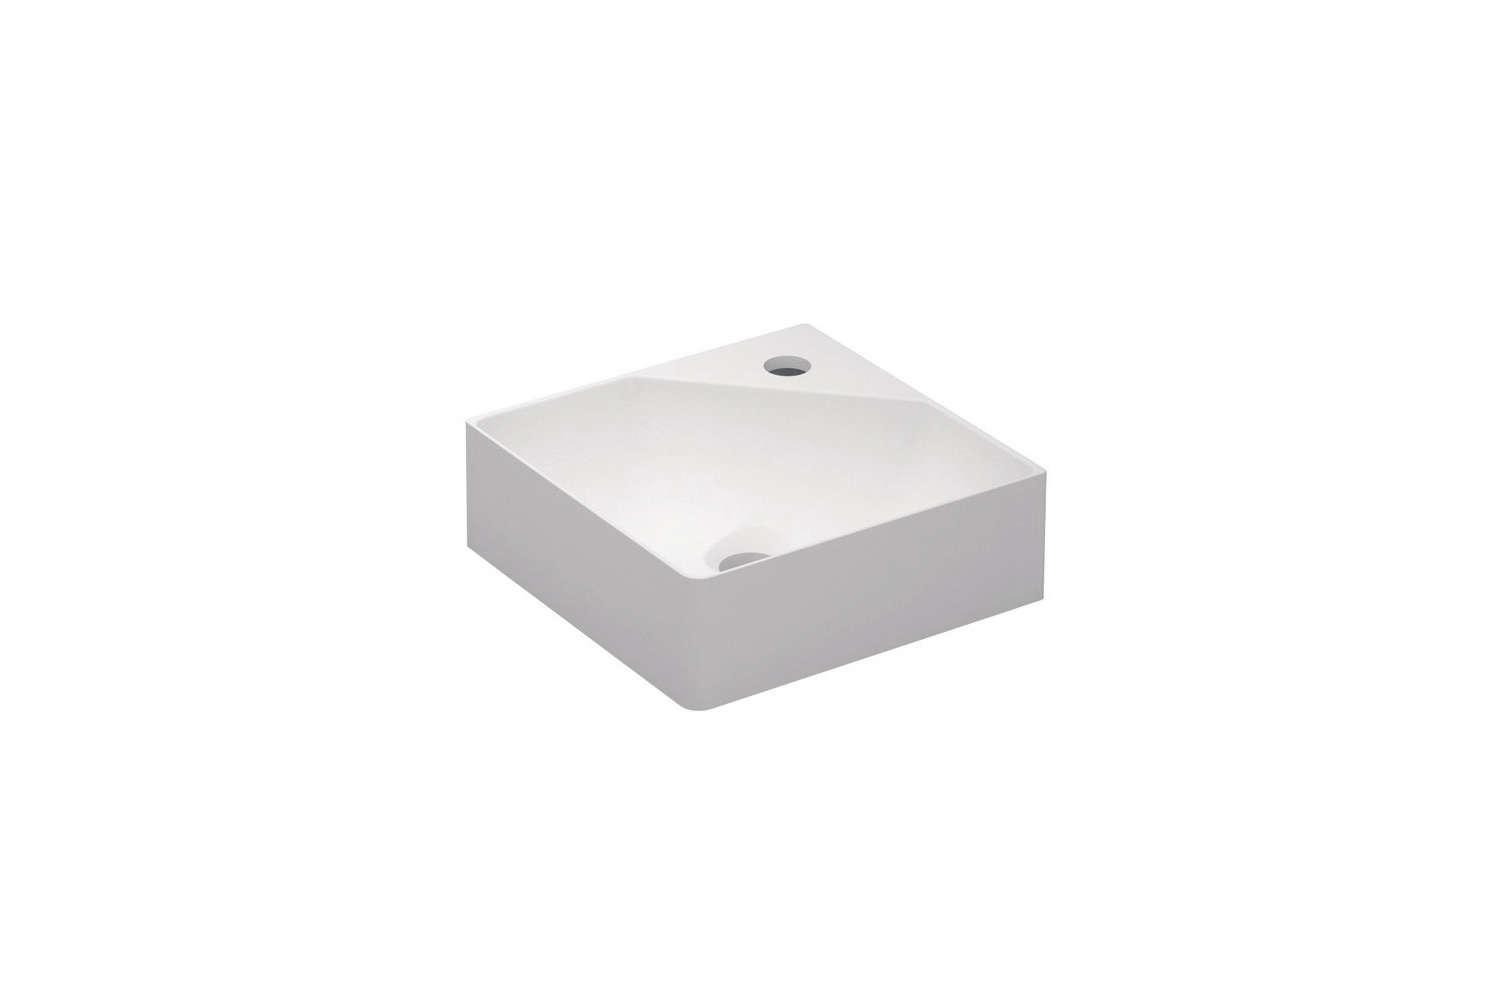 thecosmic fancy corner washbasin is made from teckstone and available in glos 12